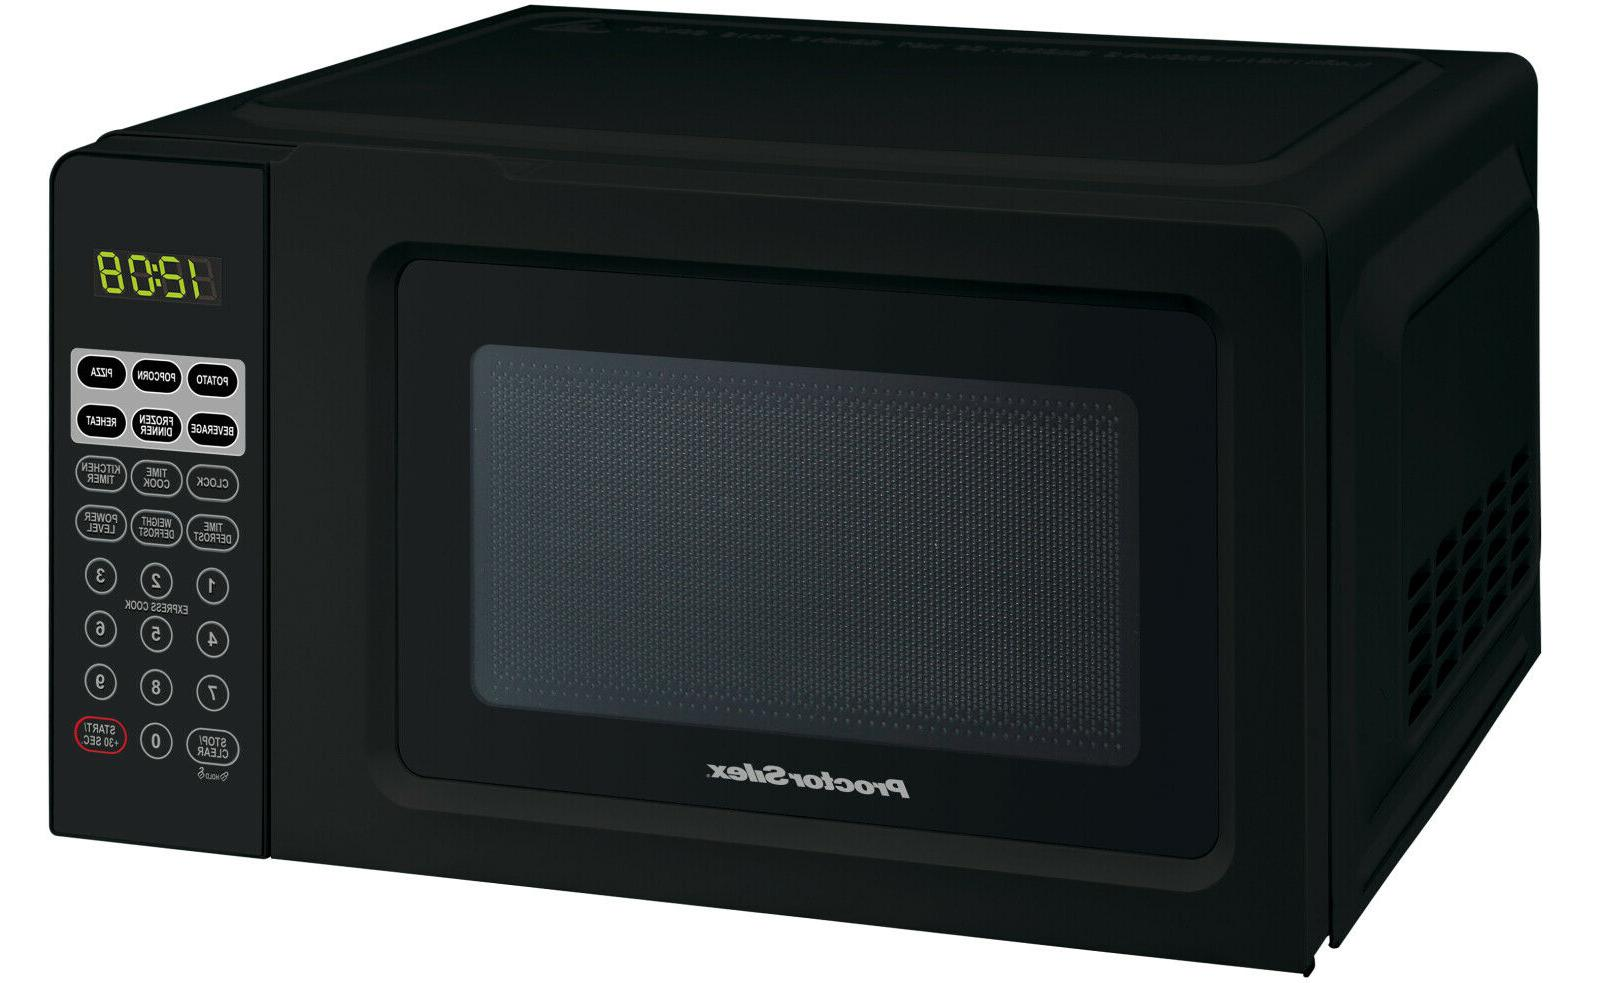 Proctor Silex 0.7 Cu.ft Black Small Appliances